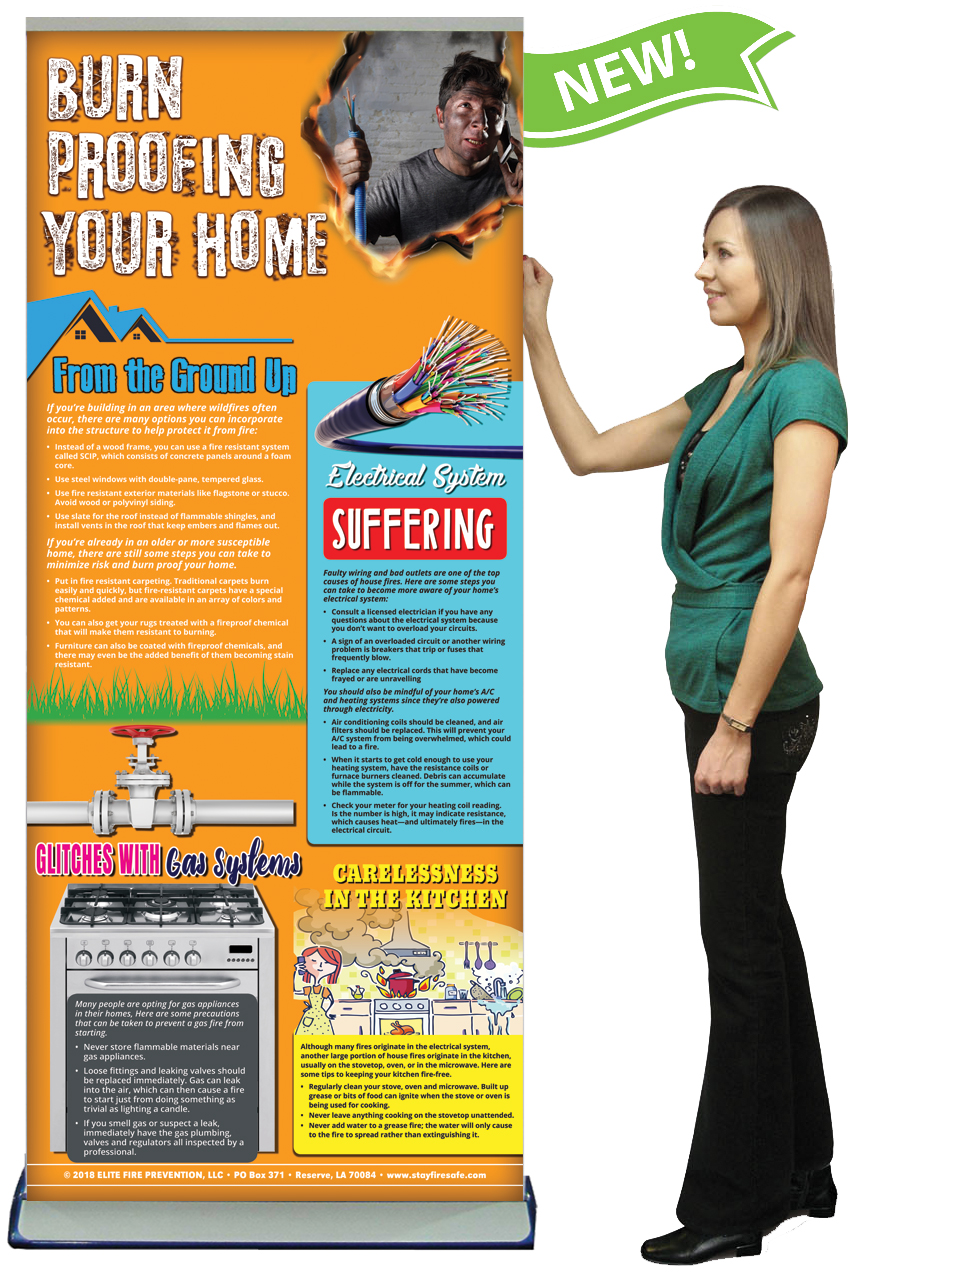 BAN-FMSS-07-Burn-Proofing-Your-Home-NEW-FLAG-with-LADY